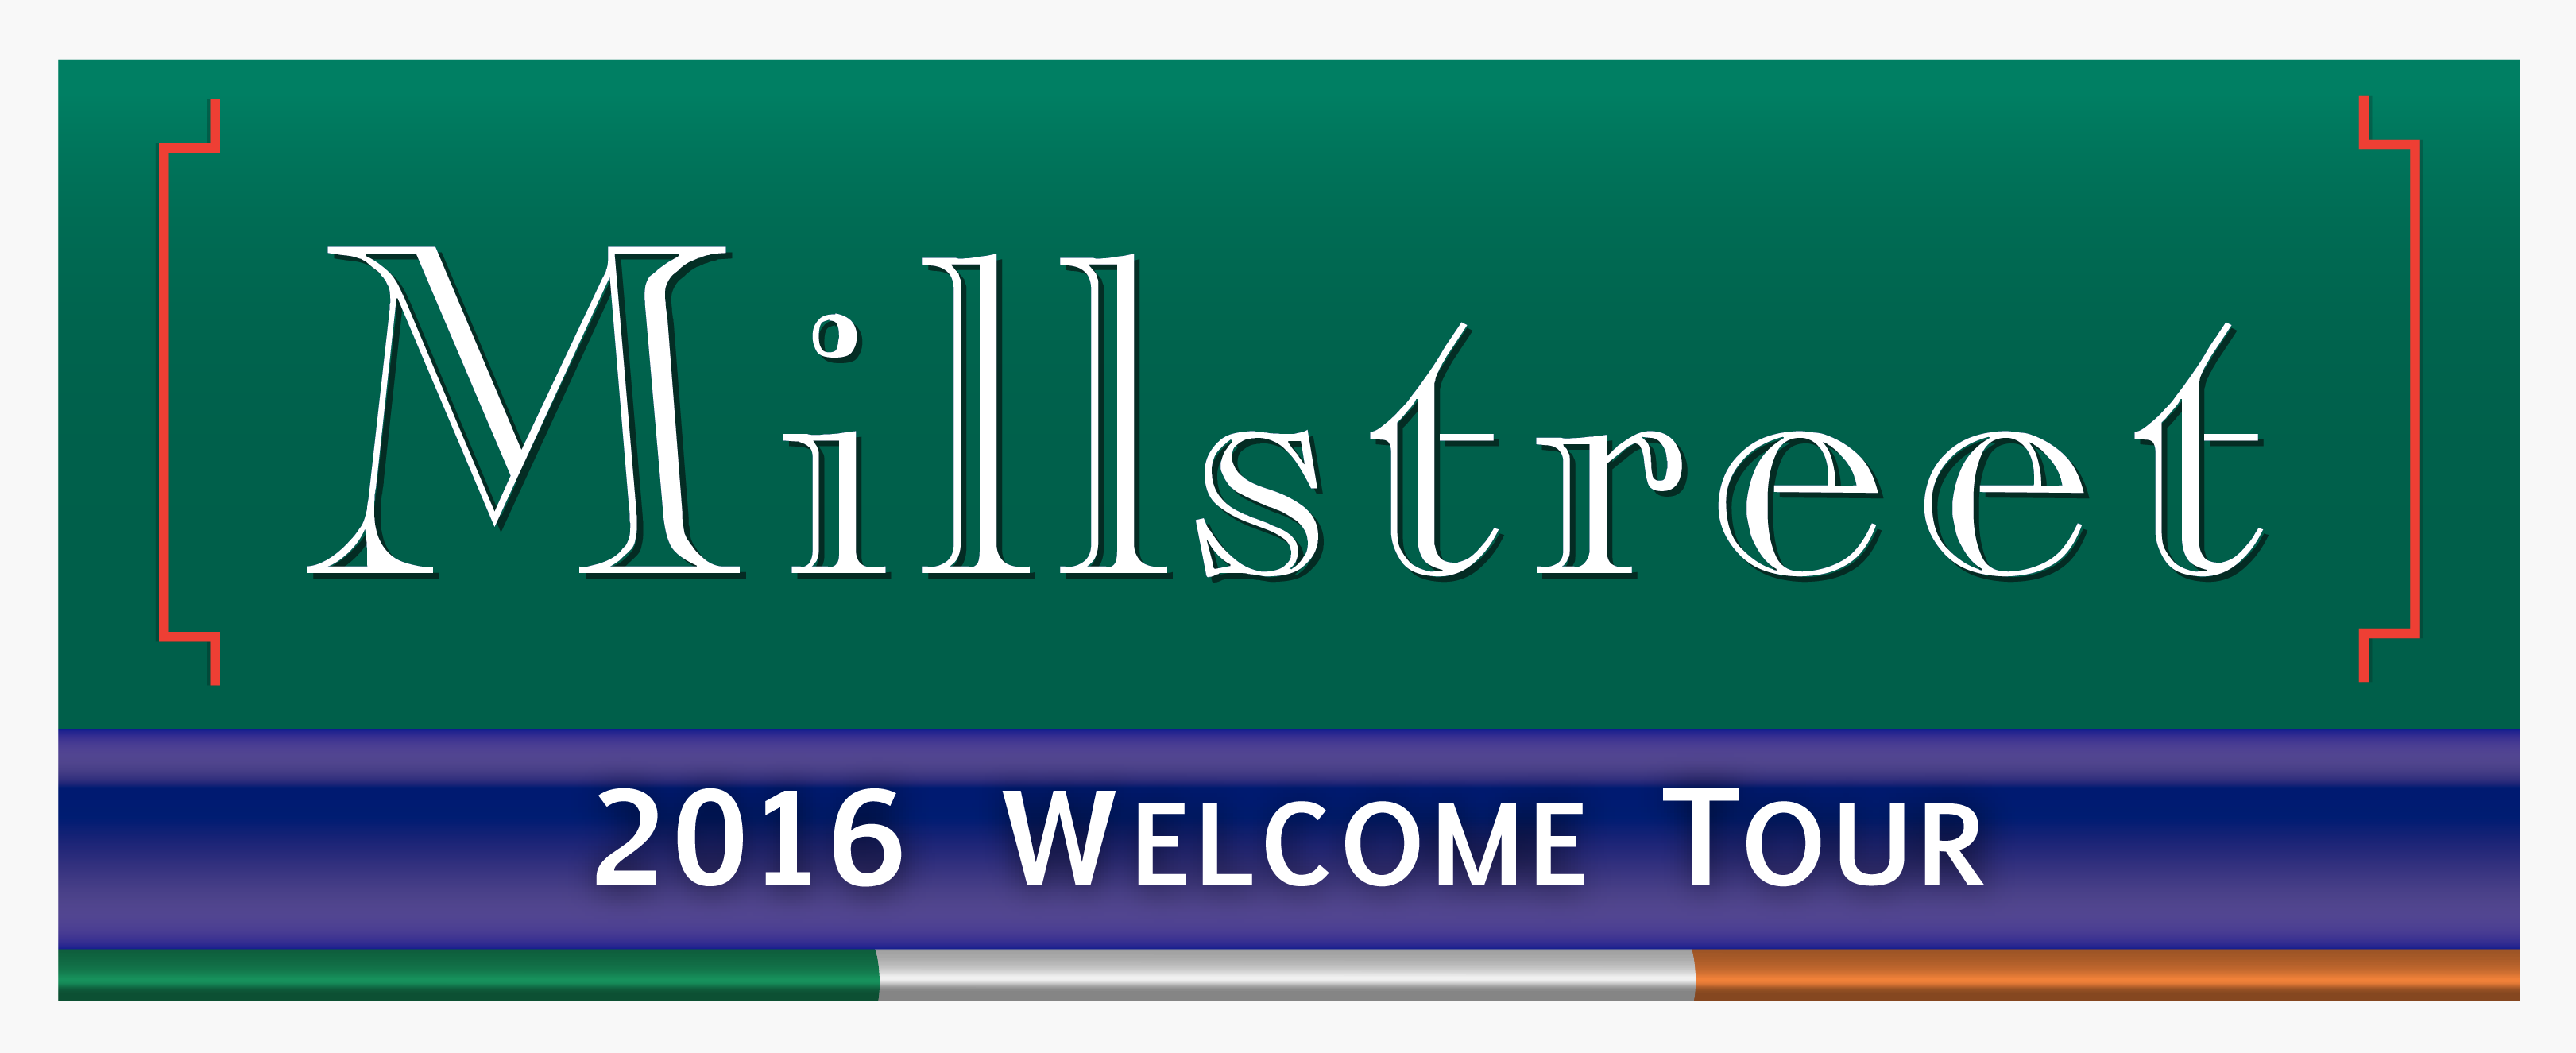 Millstreet_Welcome Tour 2016